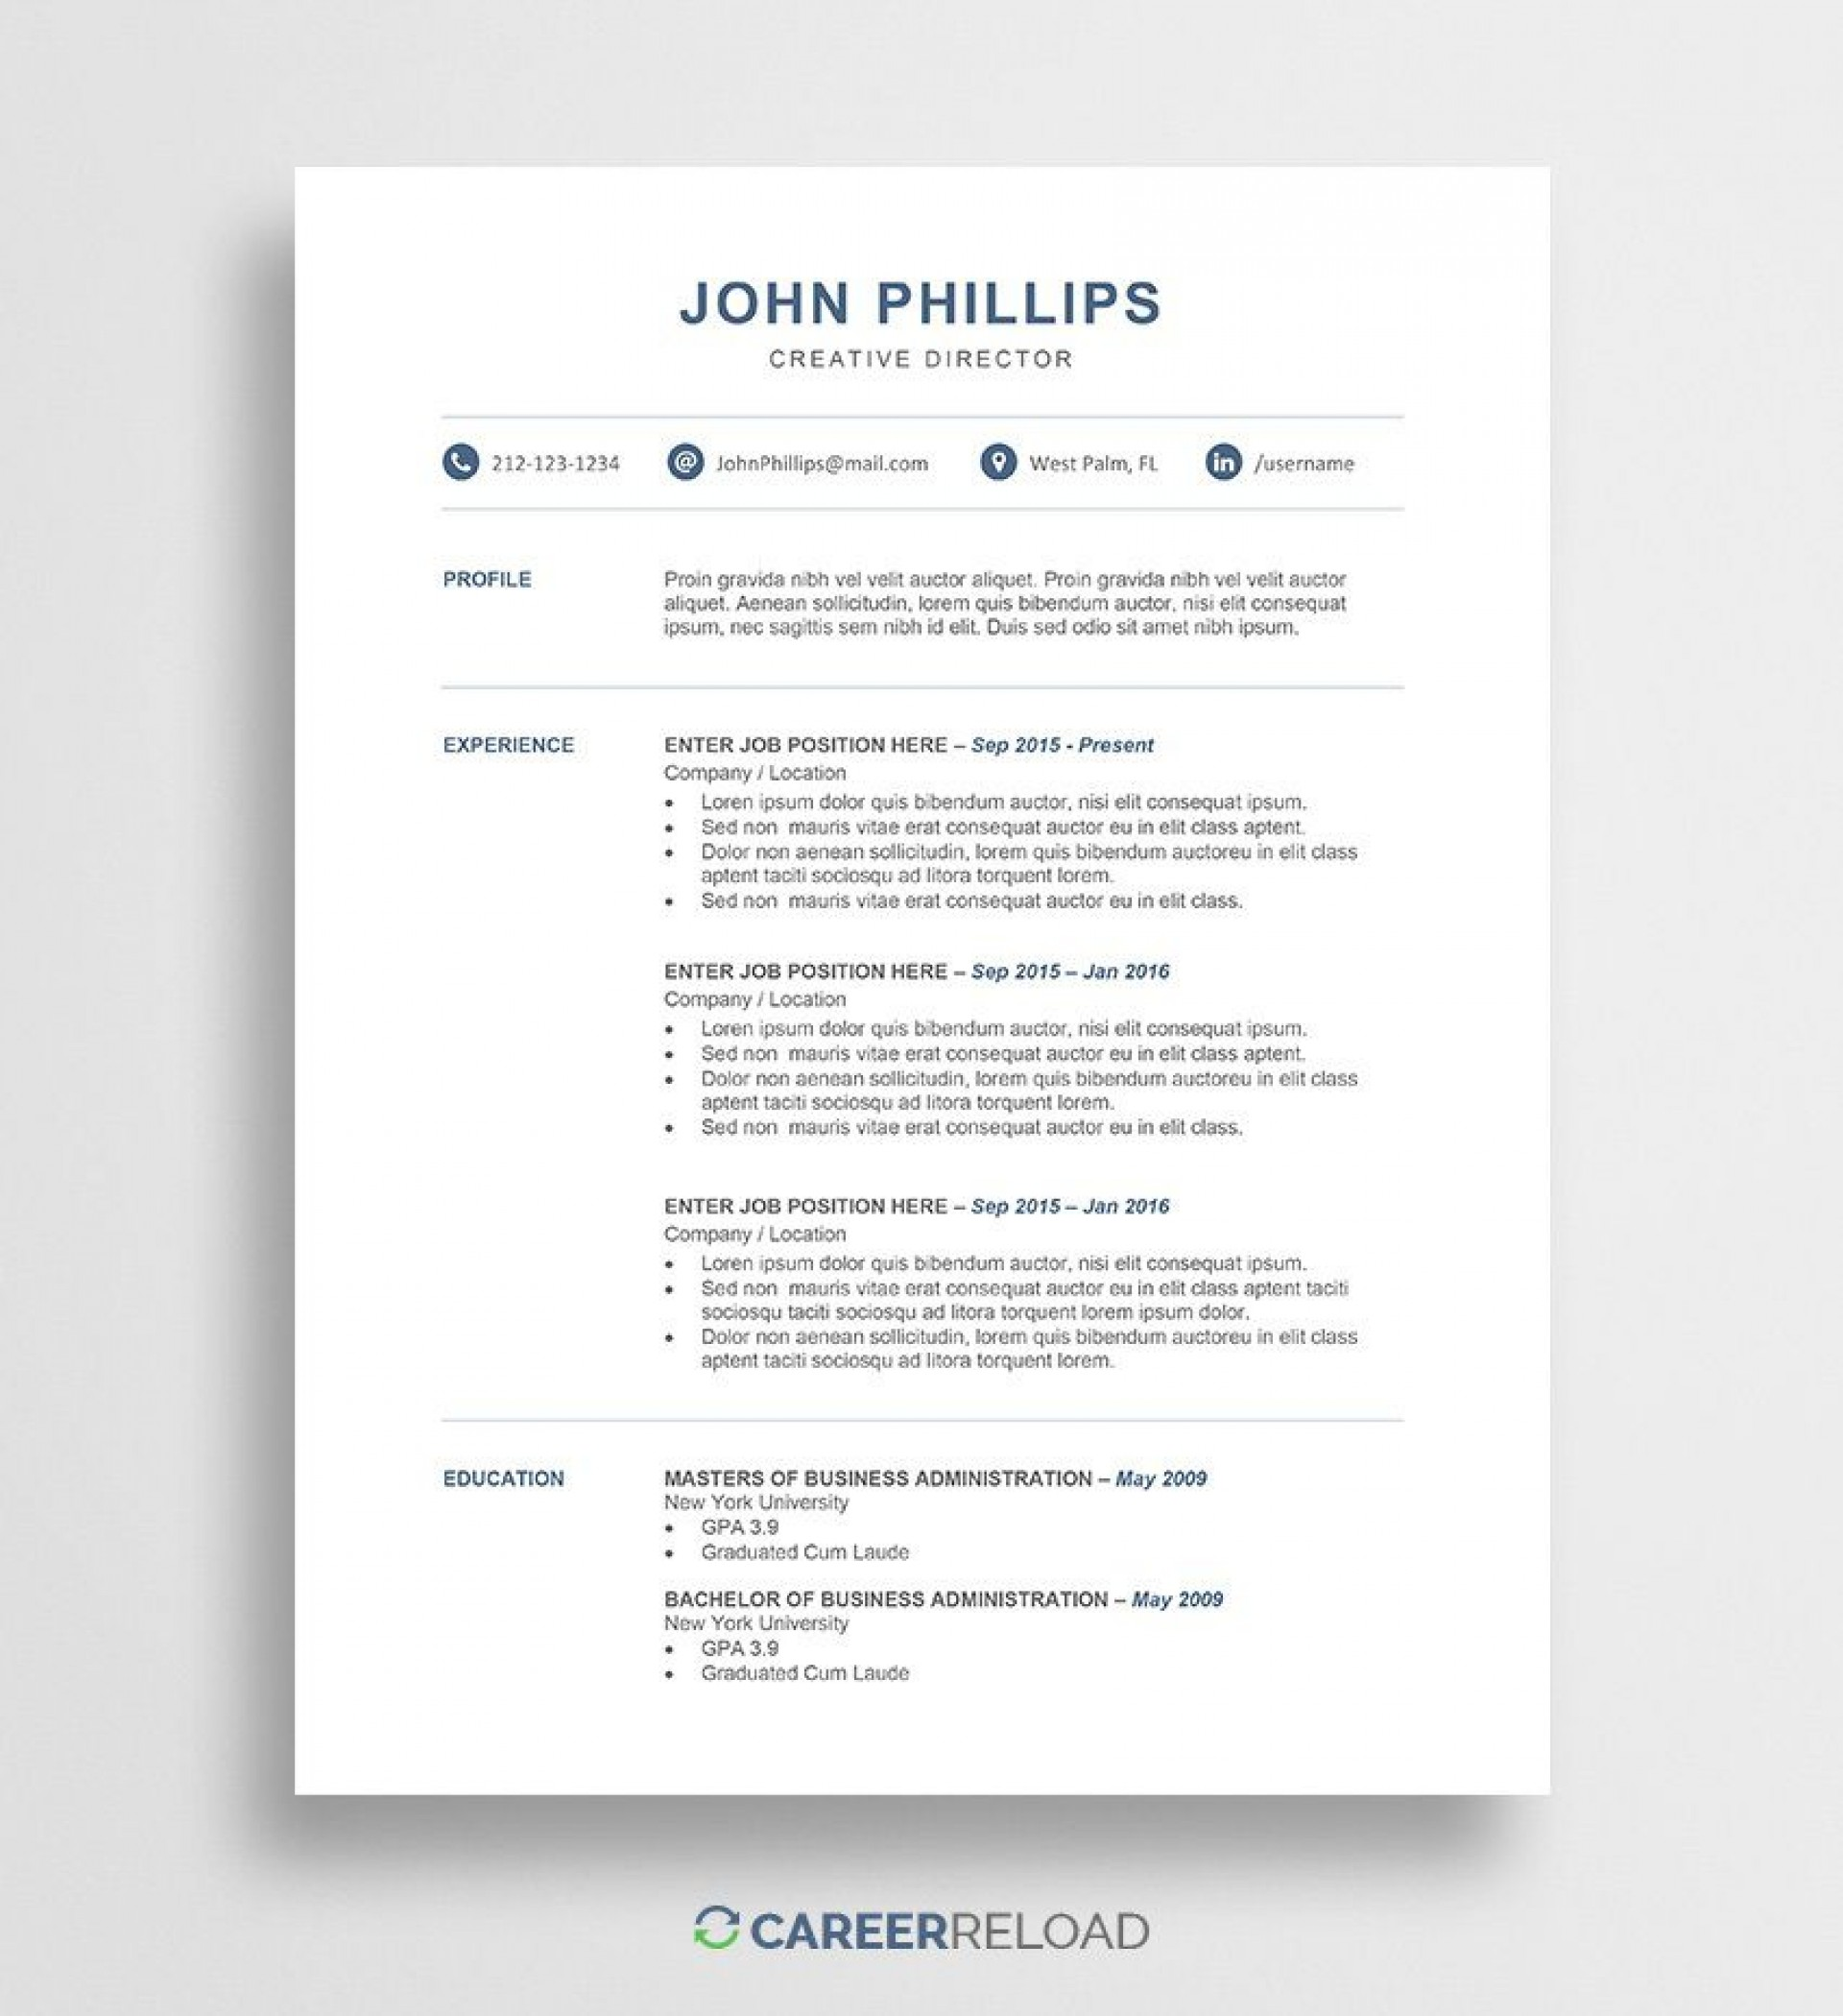 009 Imposing Word Cv Template Free Download Idea  2020 Design Document For Student1920